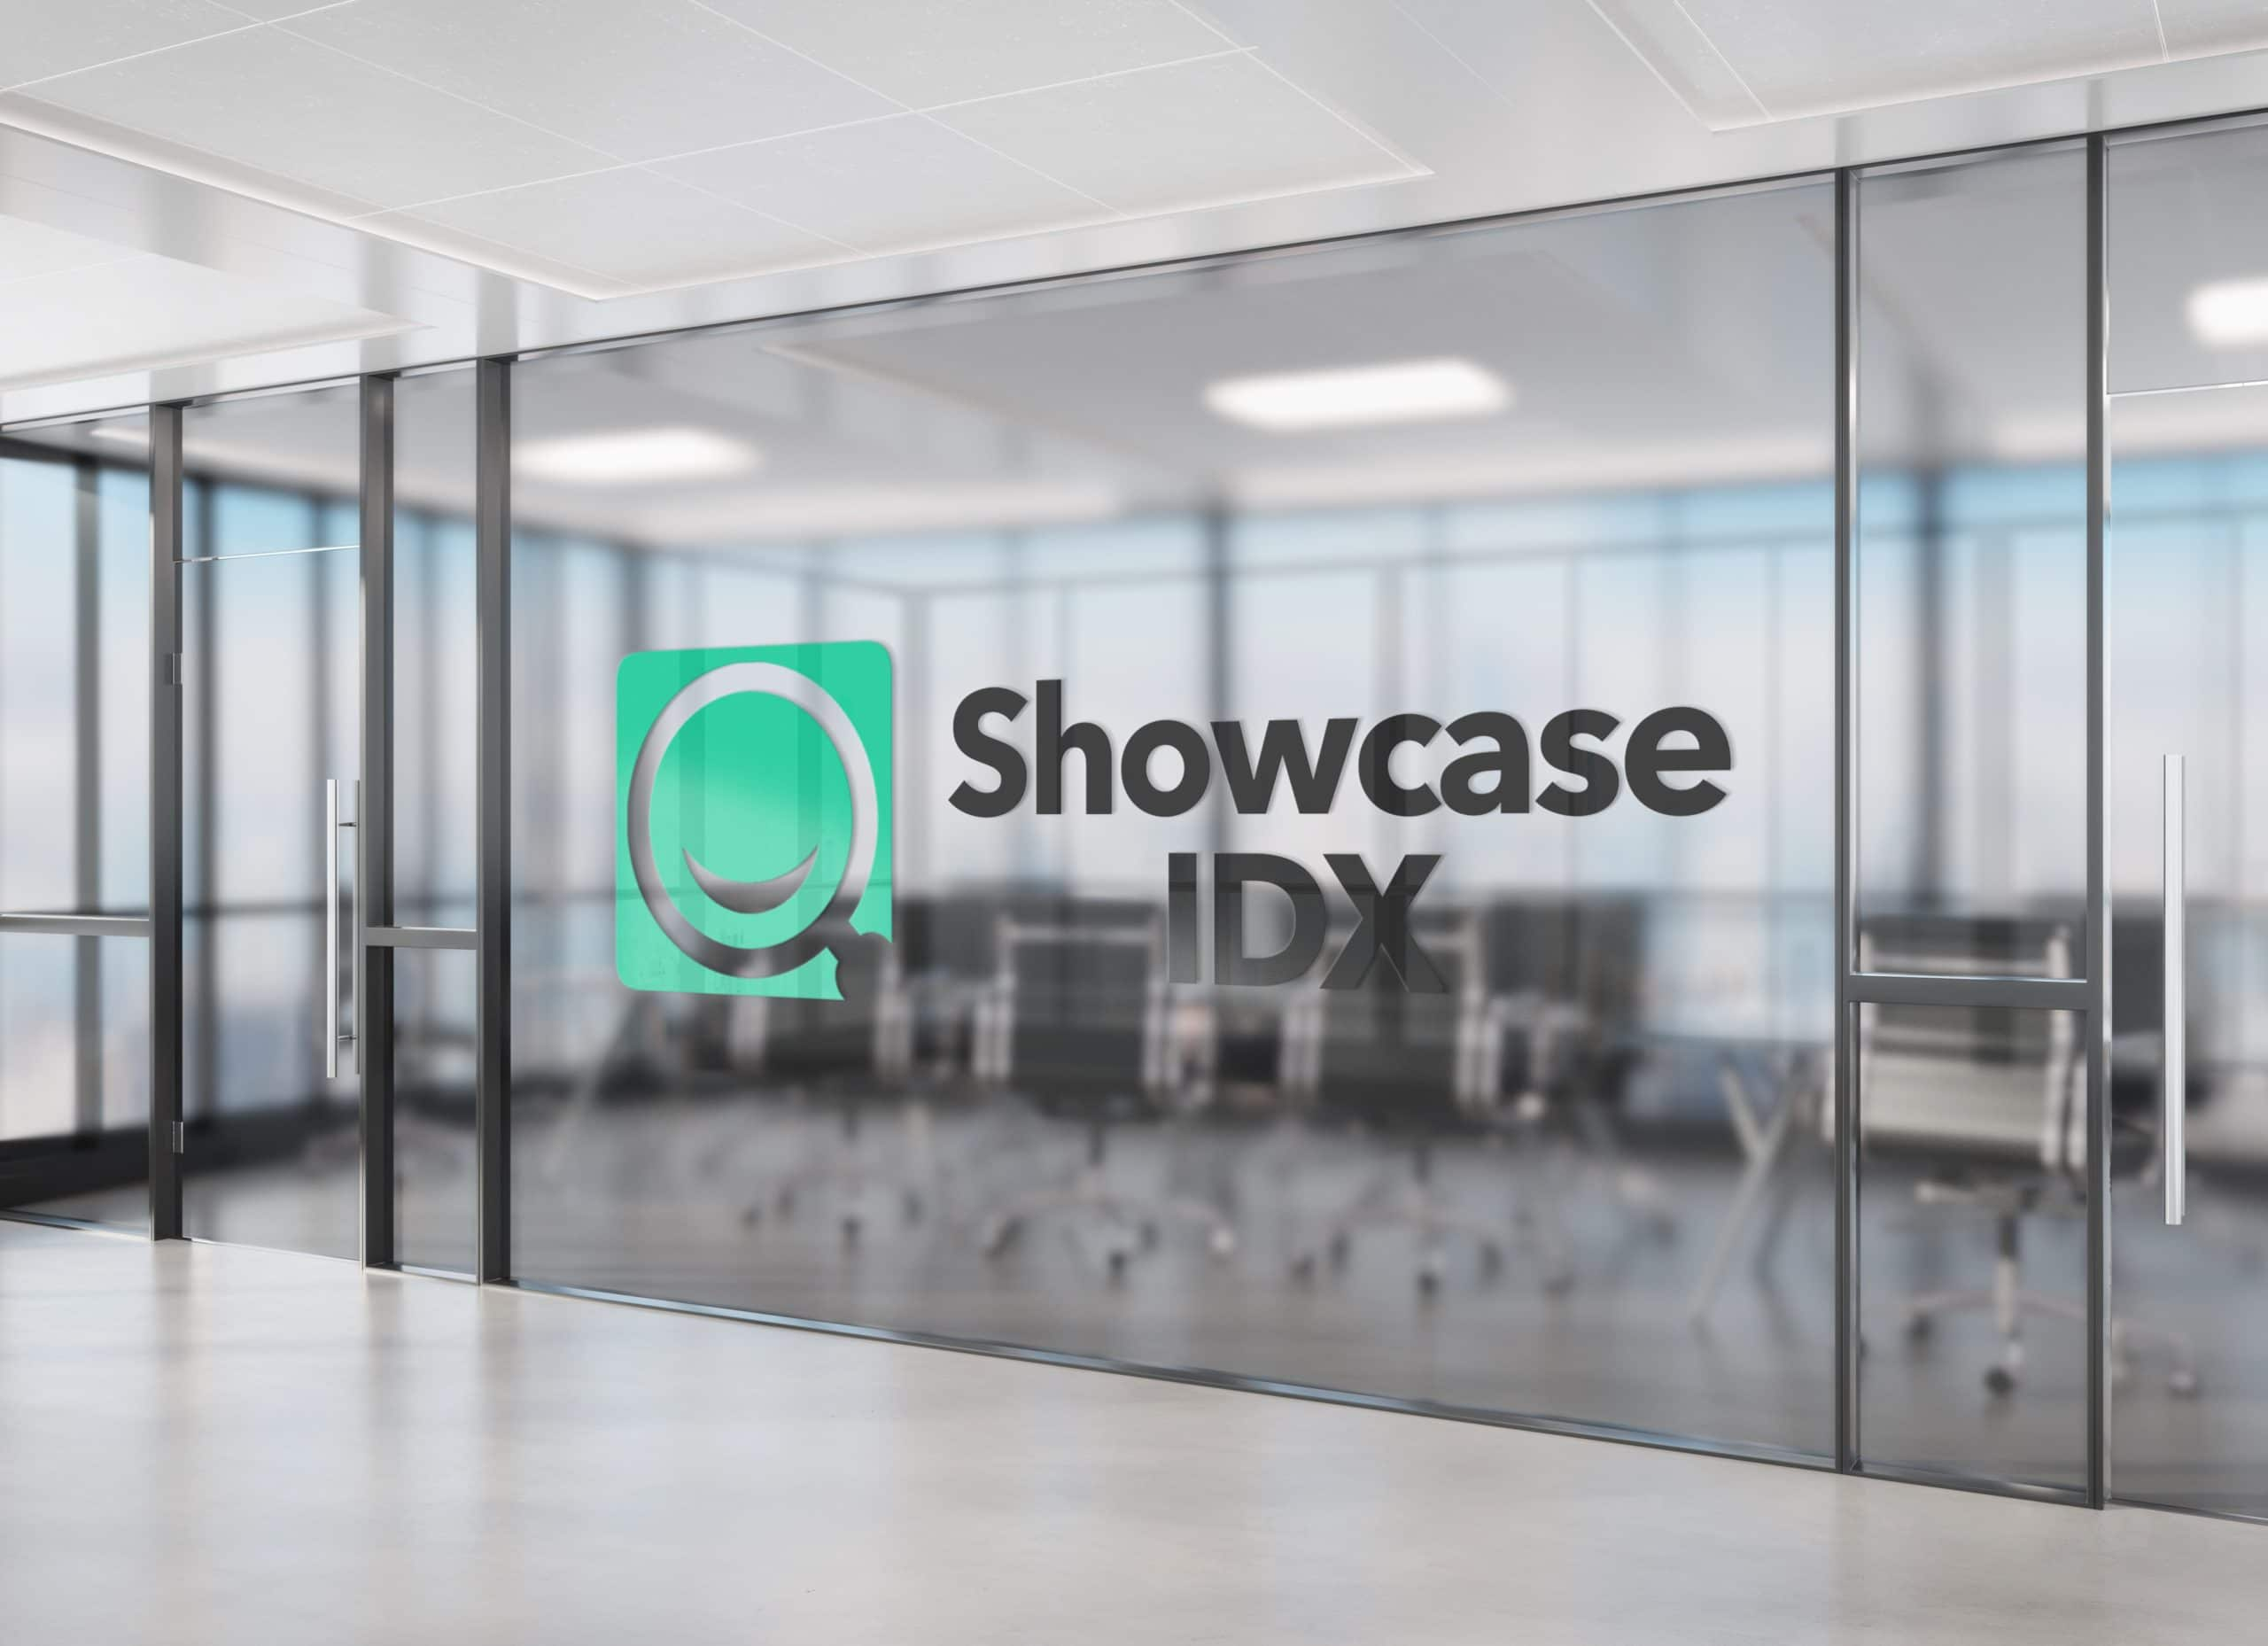 Showcase IDX office